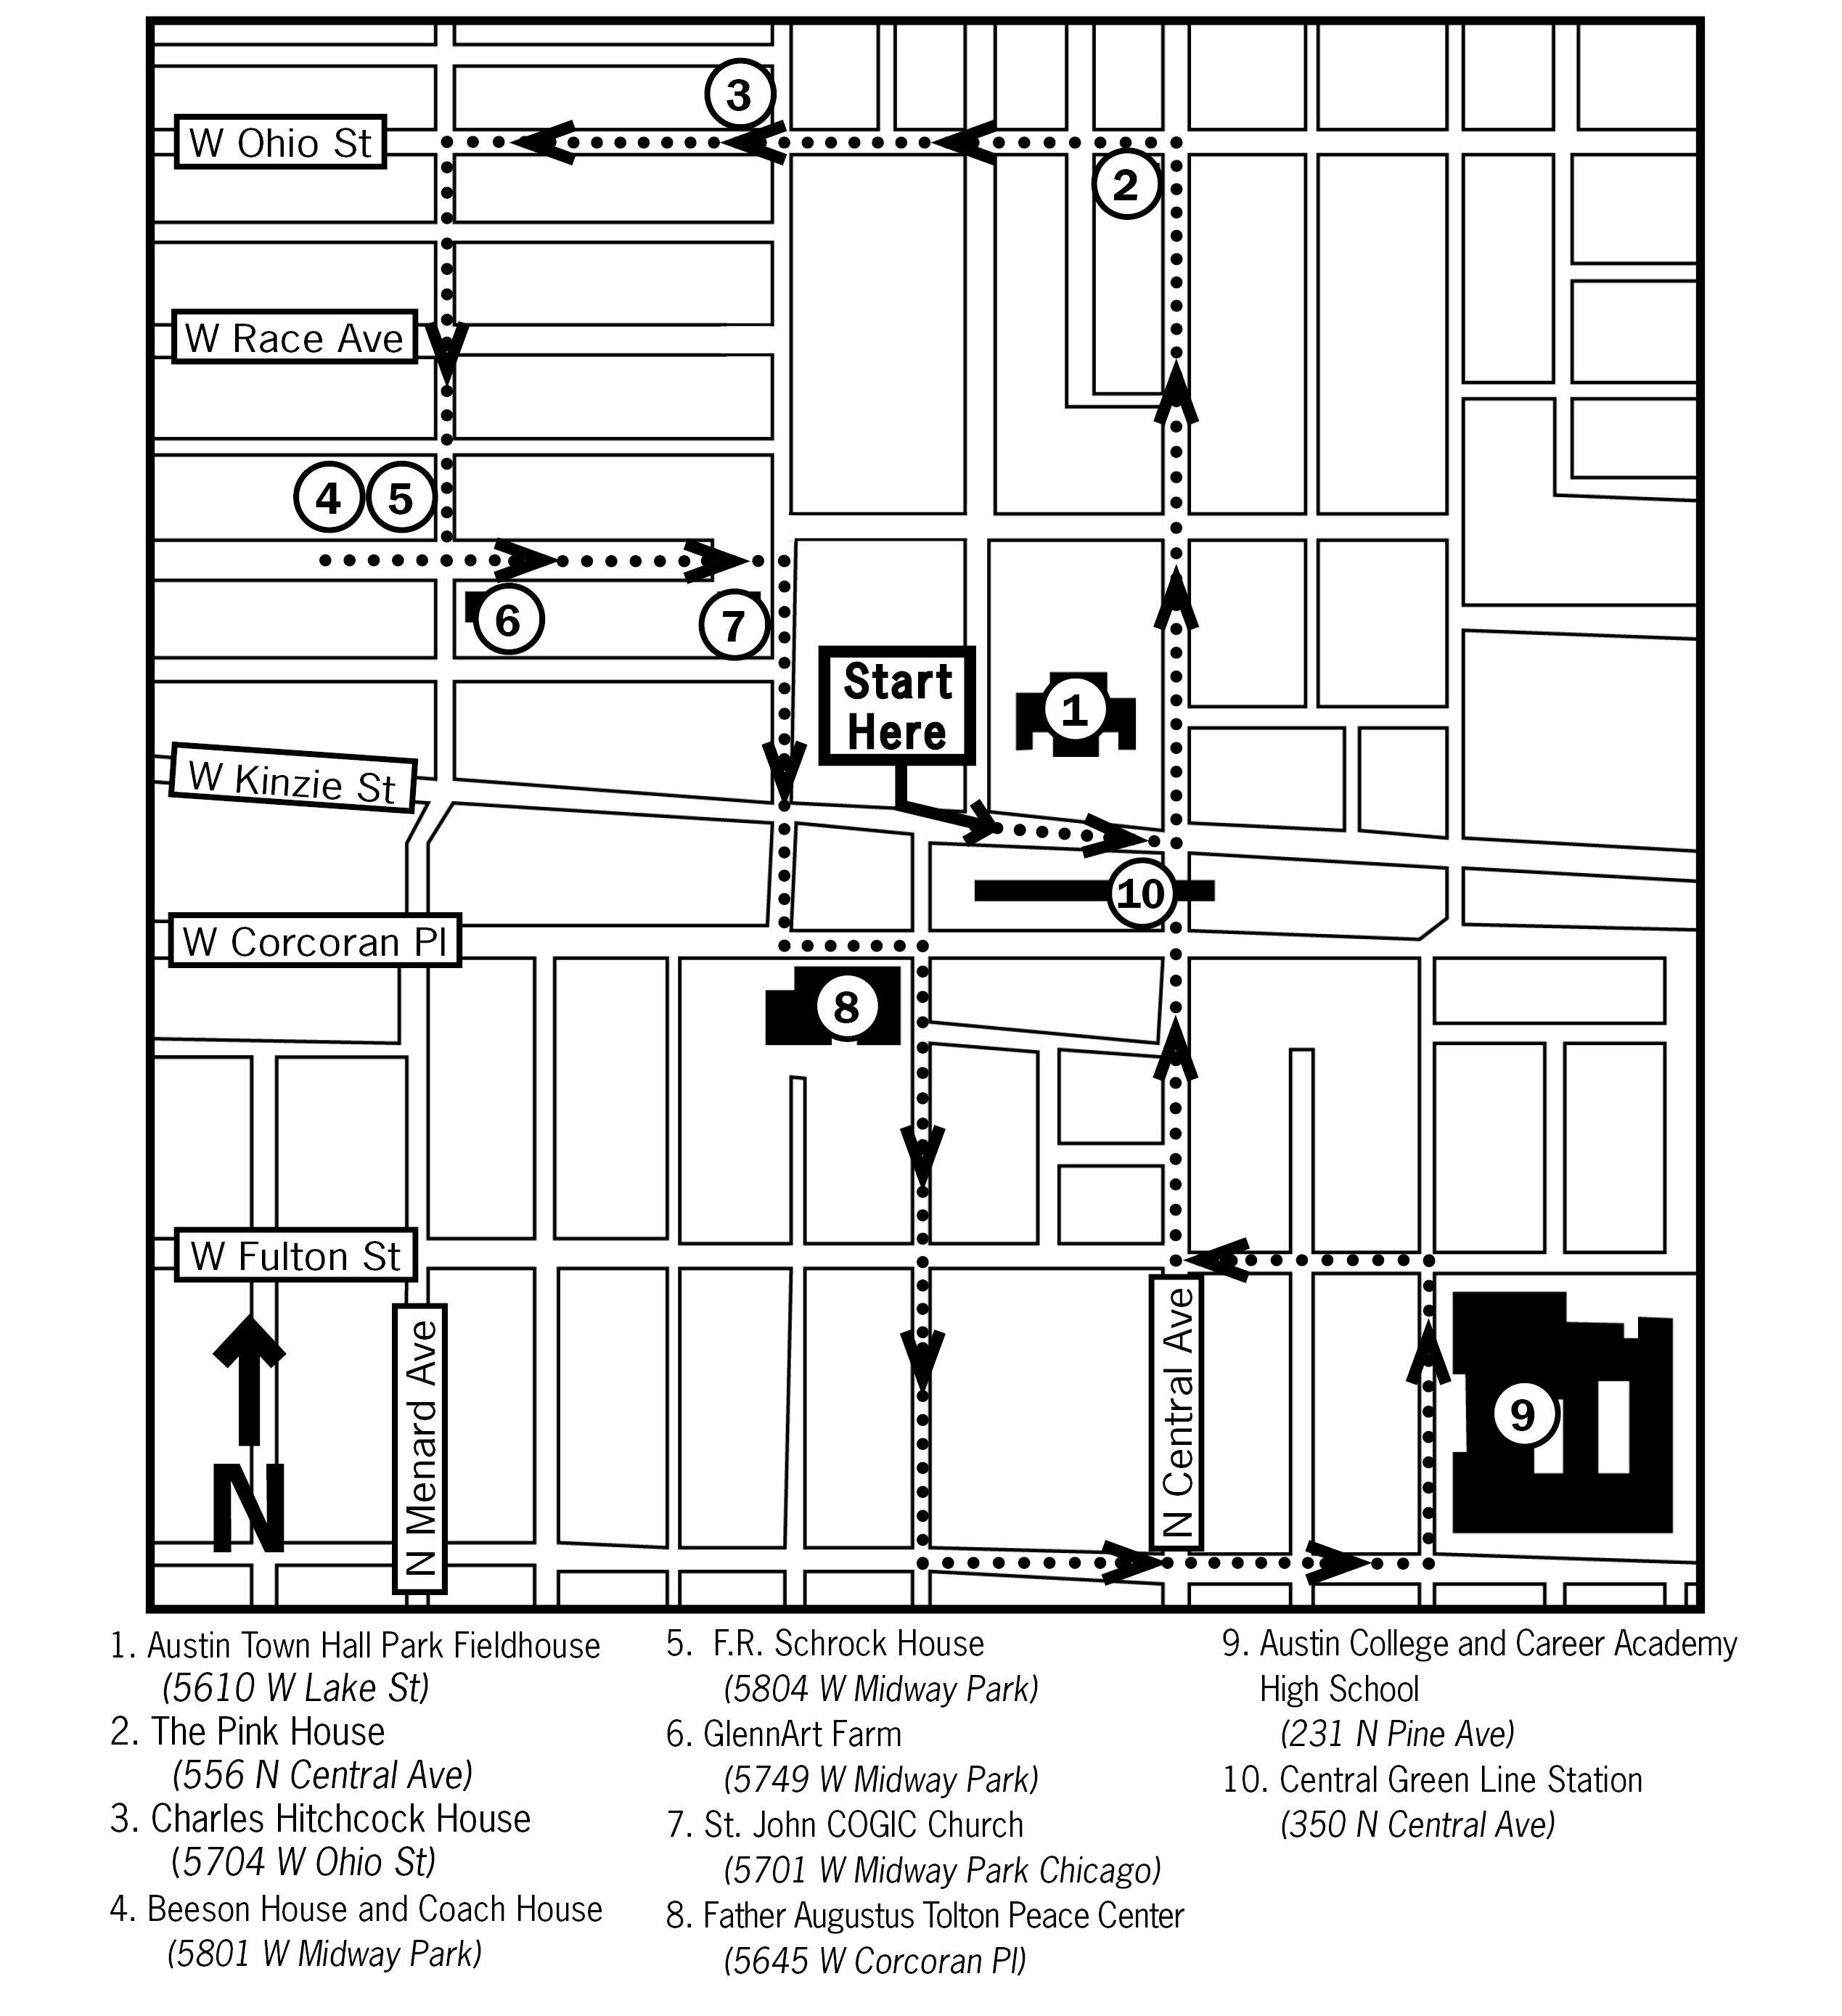 A map of Austin with different stops on the audio walking tour highlighted. The map is in black and white.